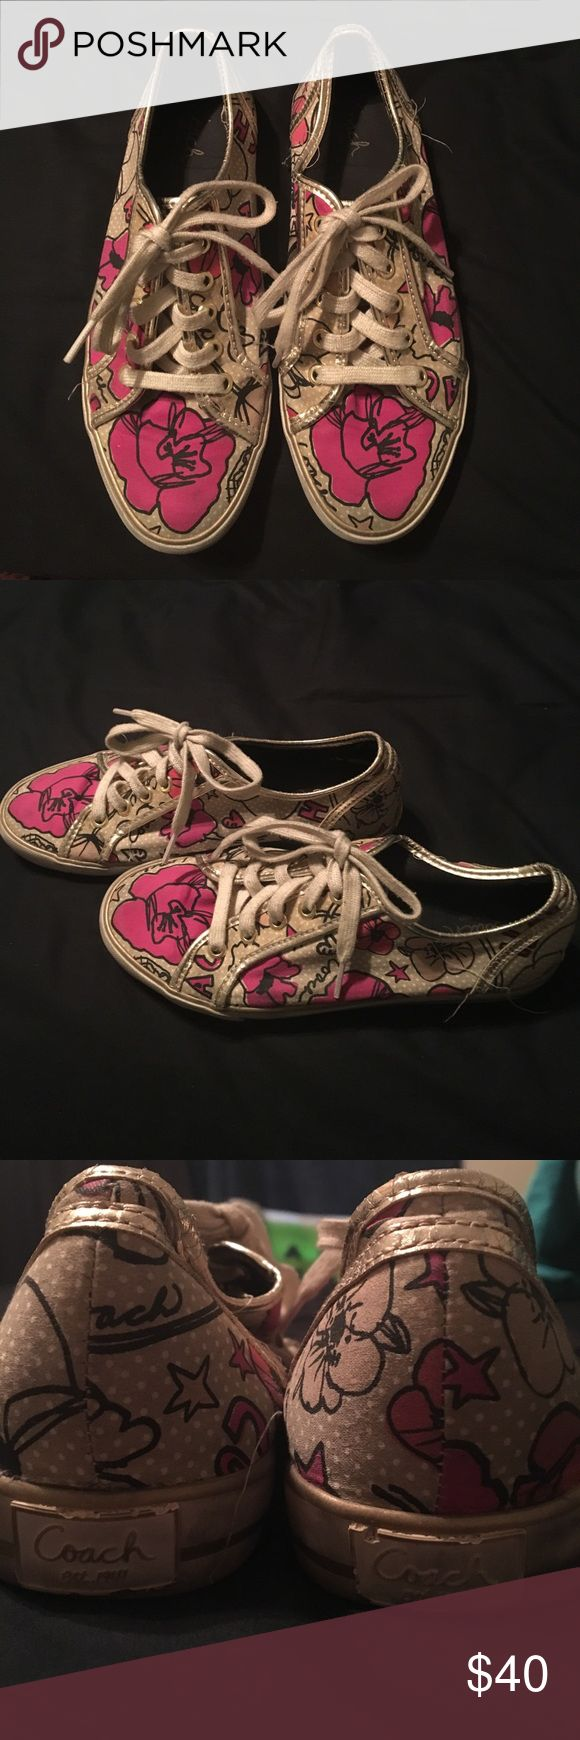 Coach Poppy tennis shoes Well loved Coach Poppy tennis shoes. Could use a good cleaning, see pictures for wear Coach Shoes Sneakers